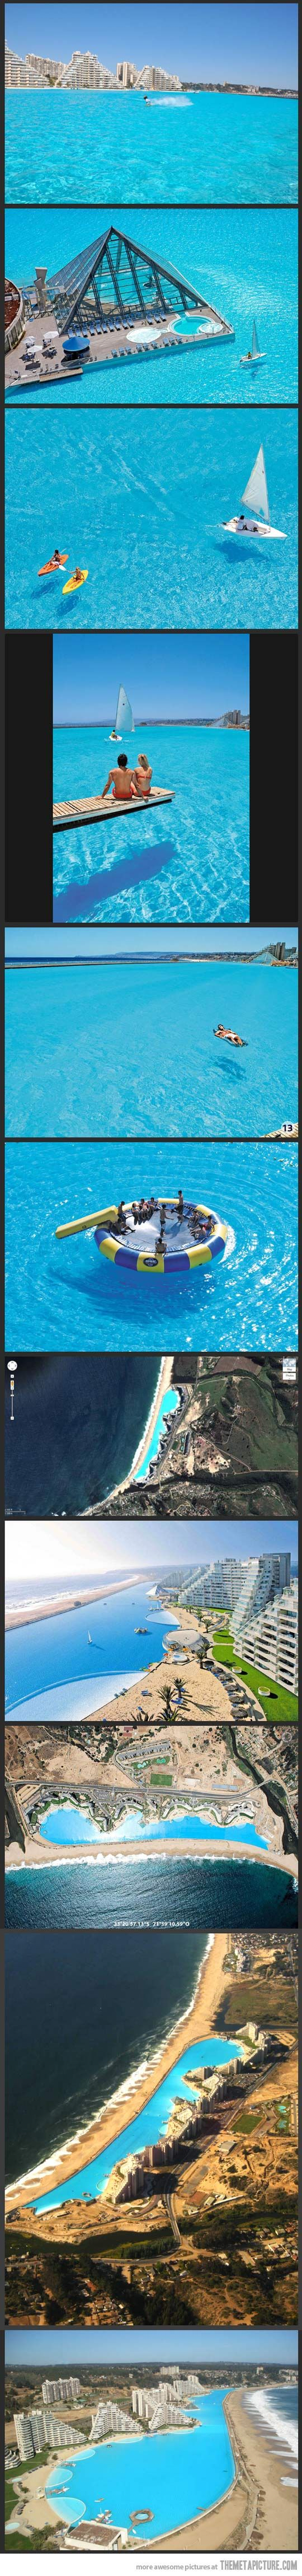 The Largest Swimming Pool in the World…